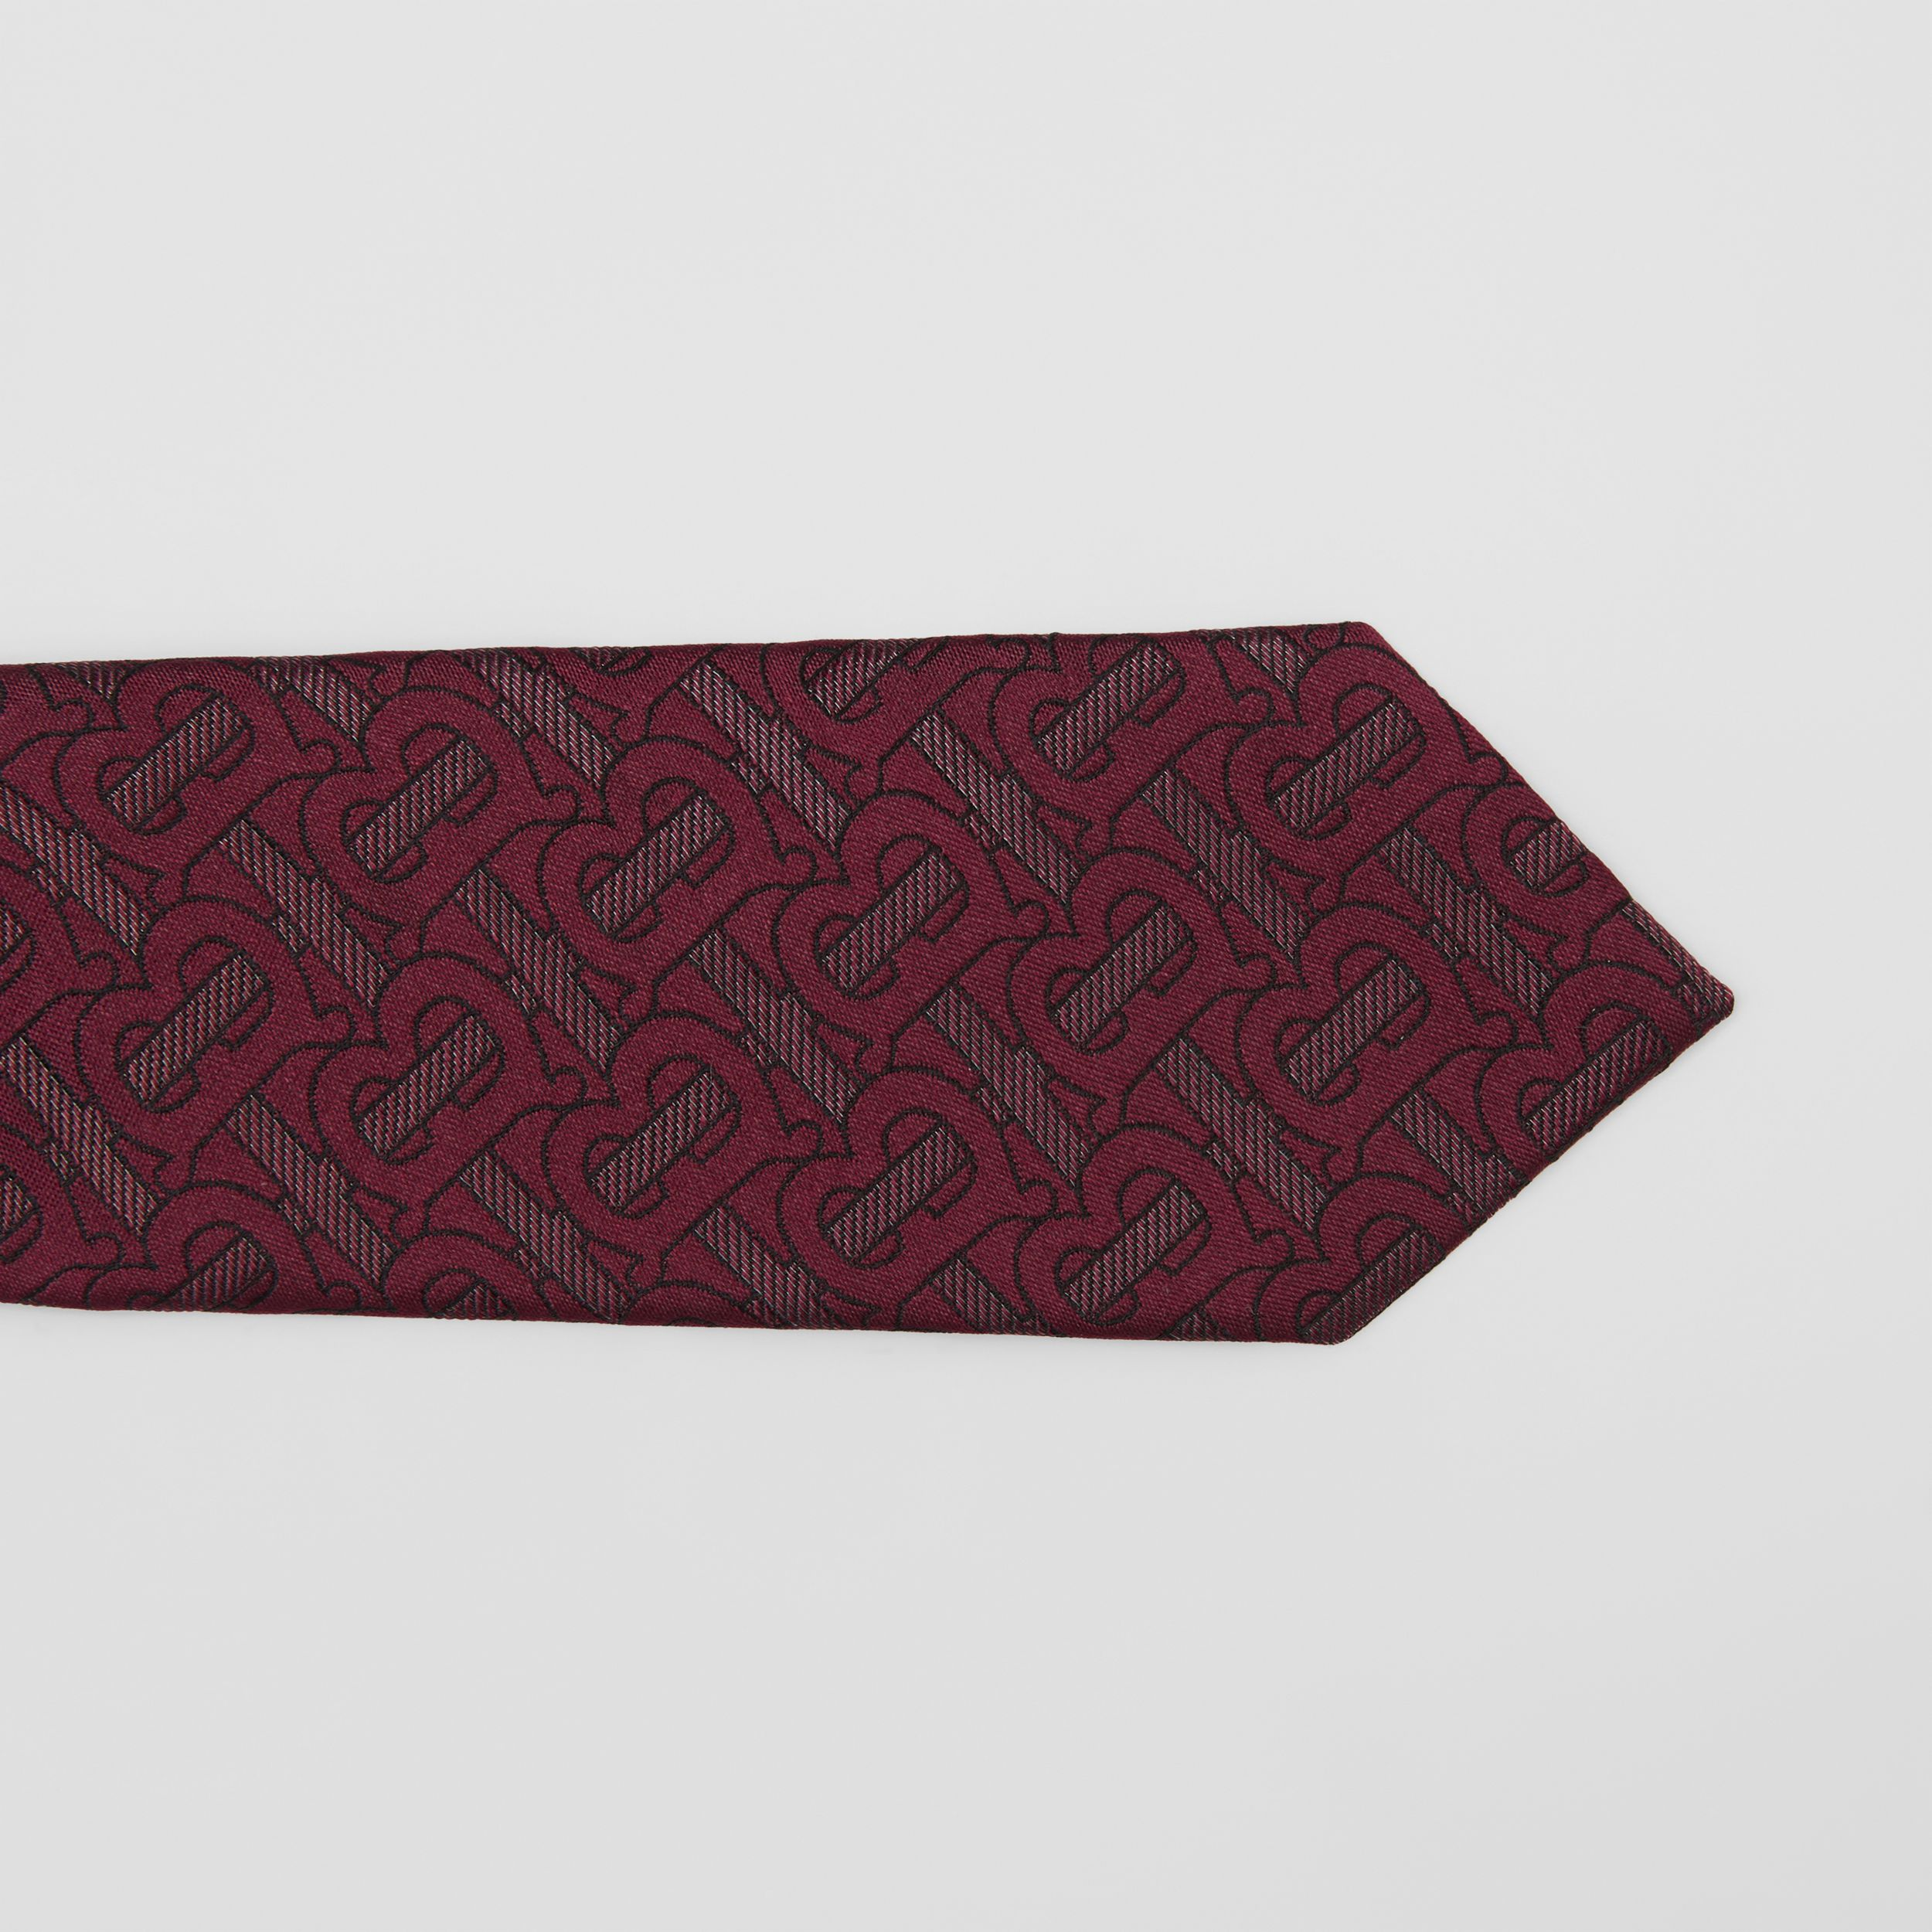 Classic Cut Monogram Silk Blend Jacquard Tie in Burgundy - Men | Burberry Australia - 2